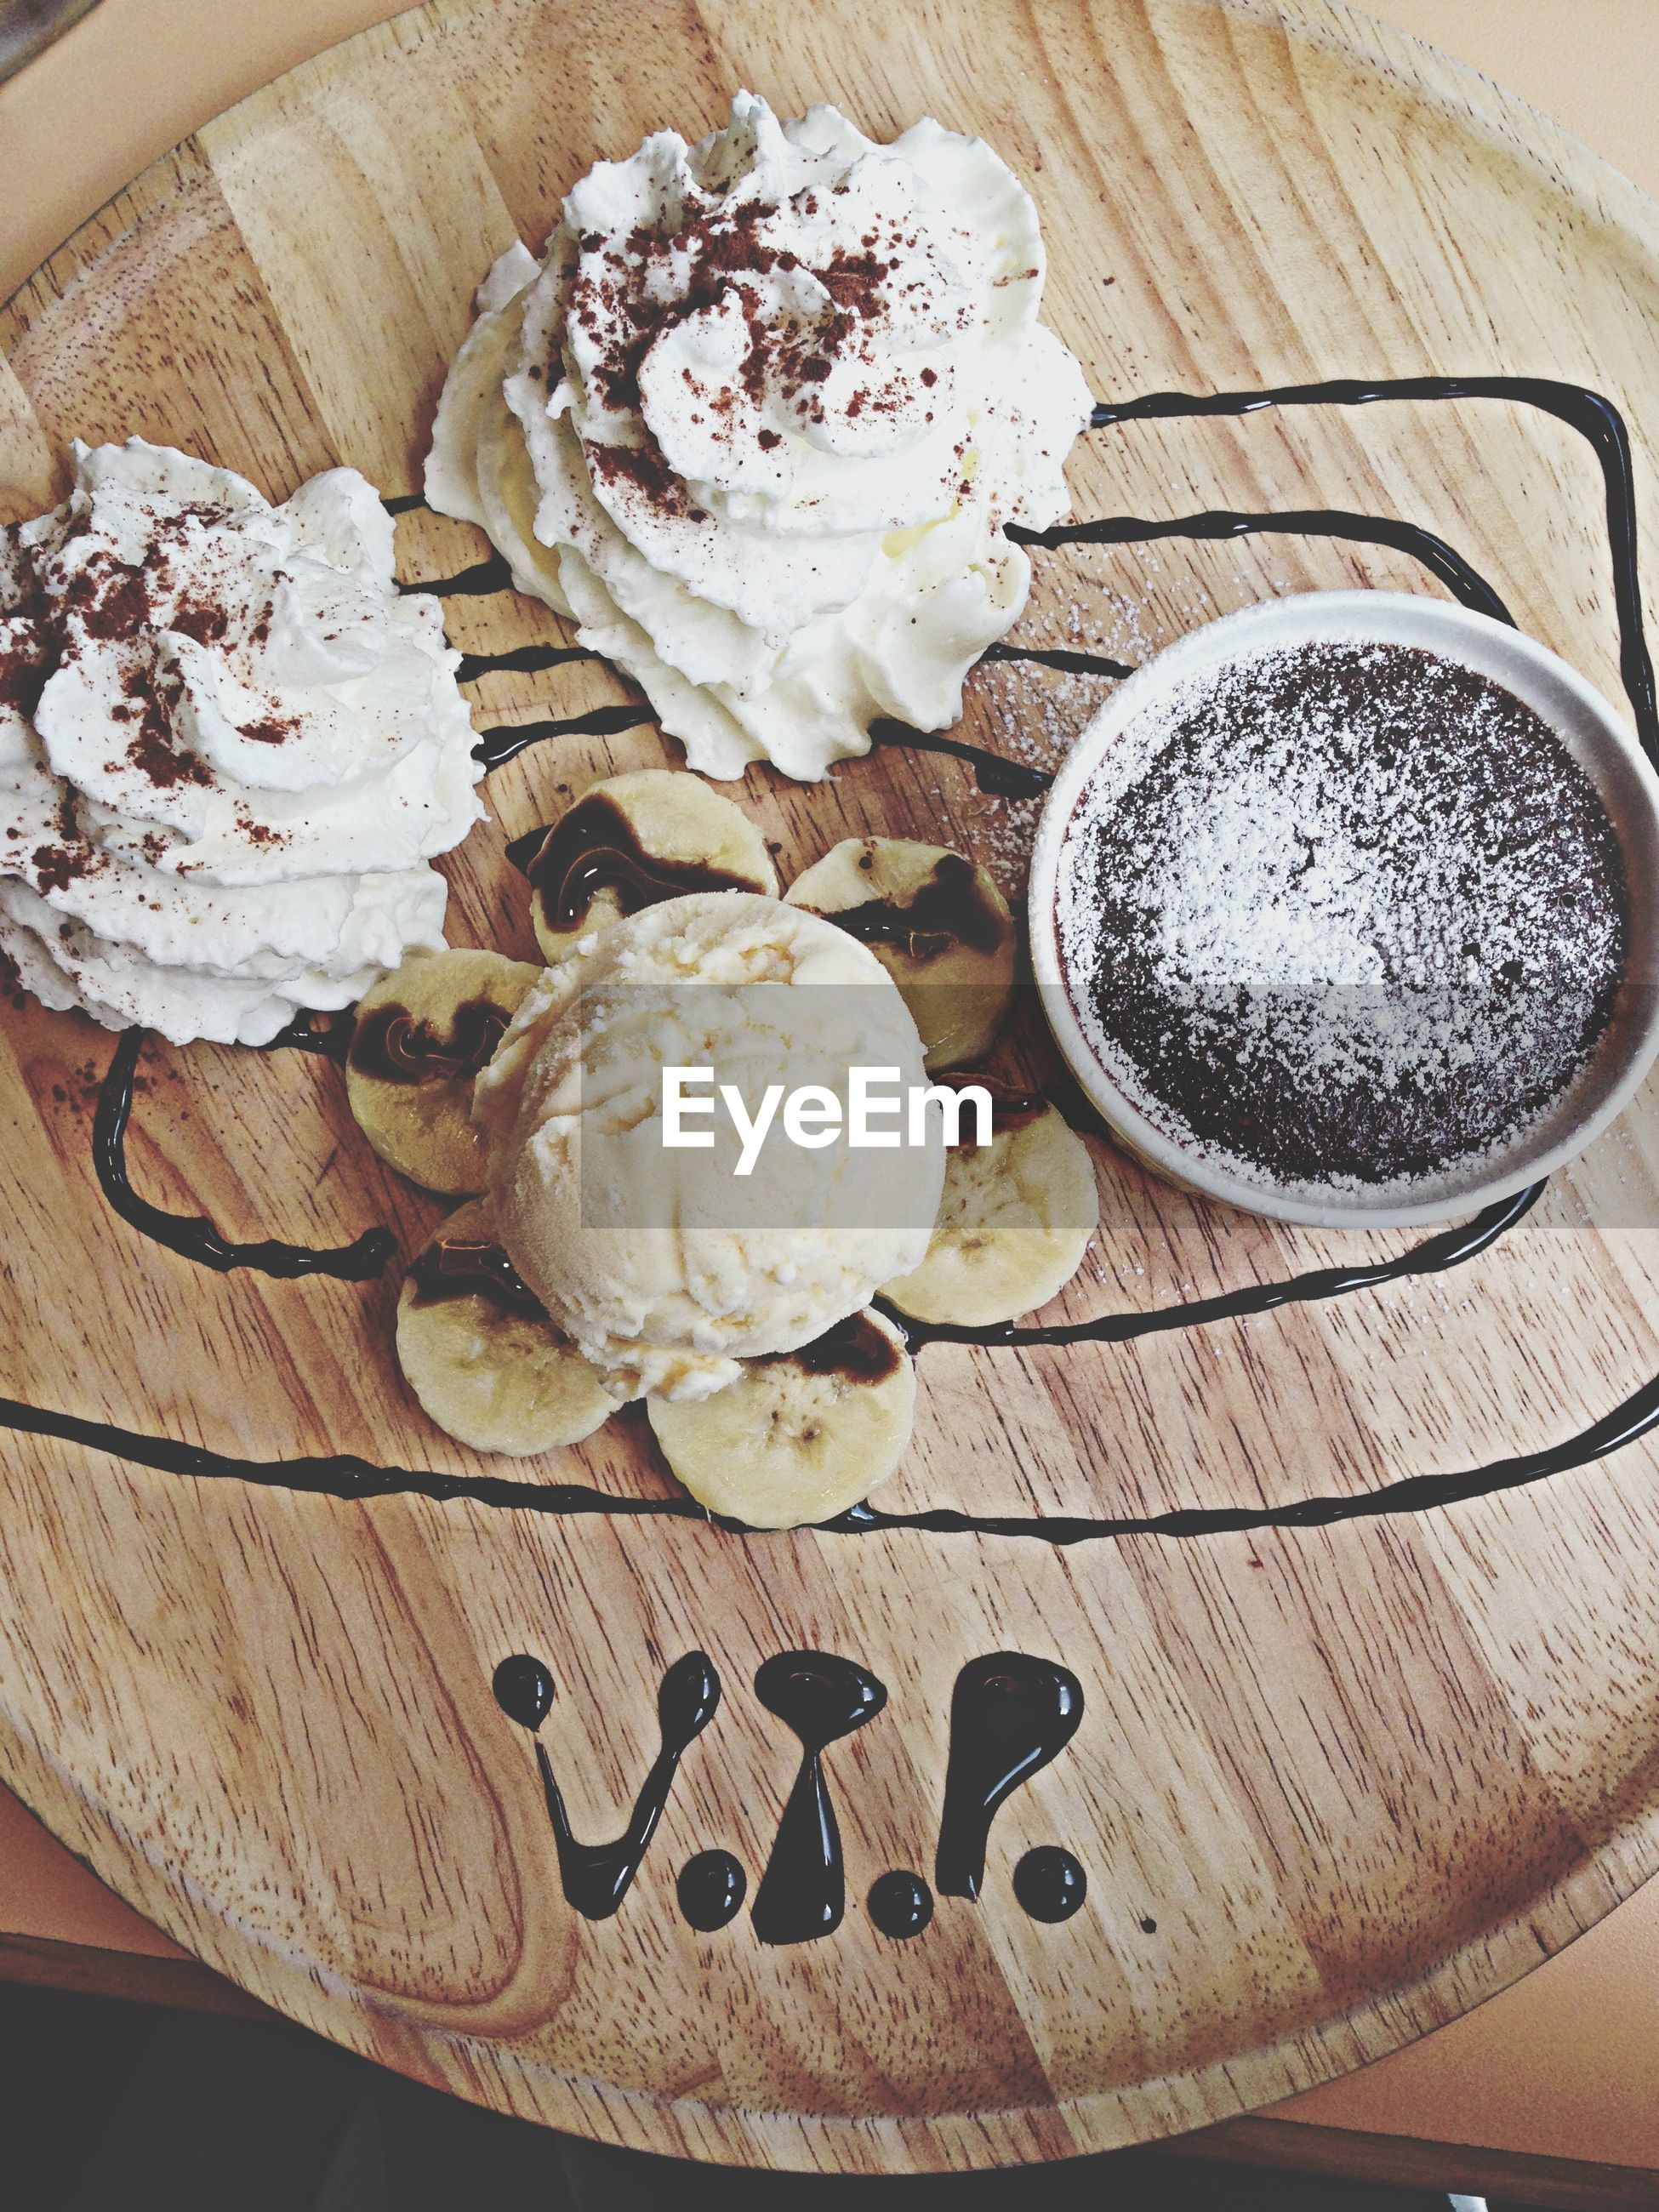 food and drink, food, indoors, freshness, still life, sweet food, ready-to-eat, table, dessert, high angle view, plate, indulgence, unhealthy eating, cake, close-up, fork, temptation, serving size, chocolate